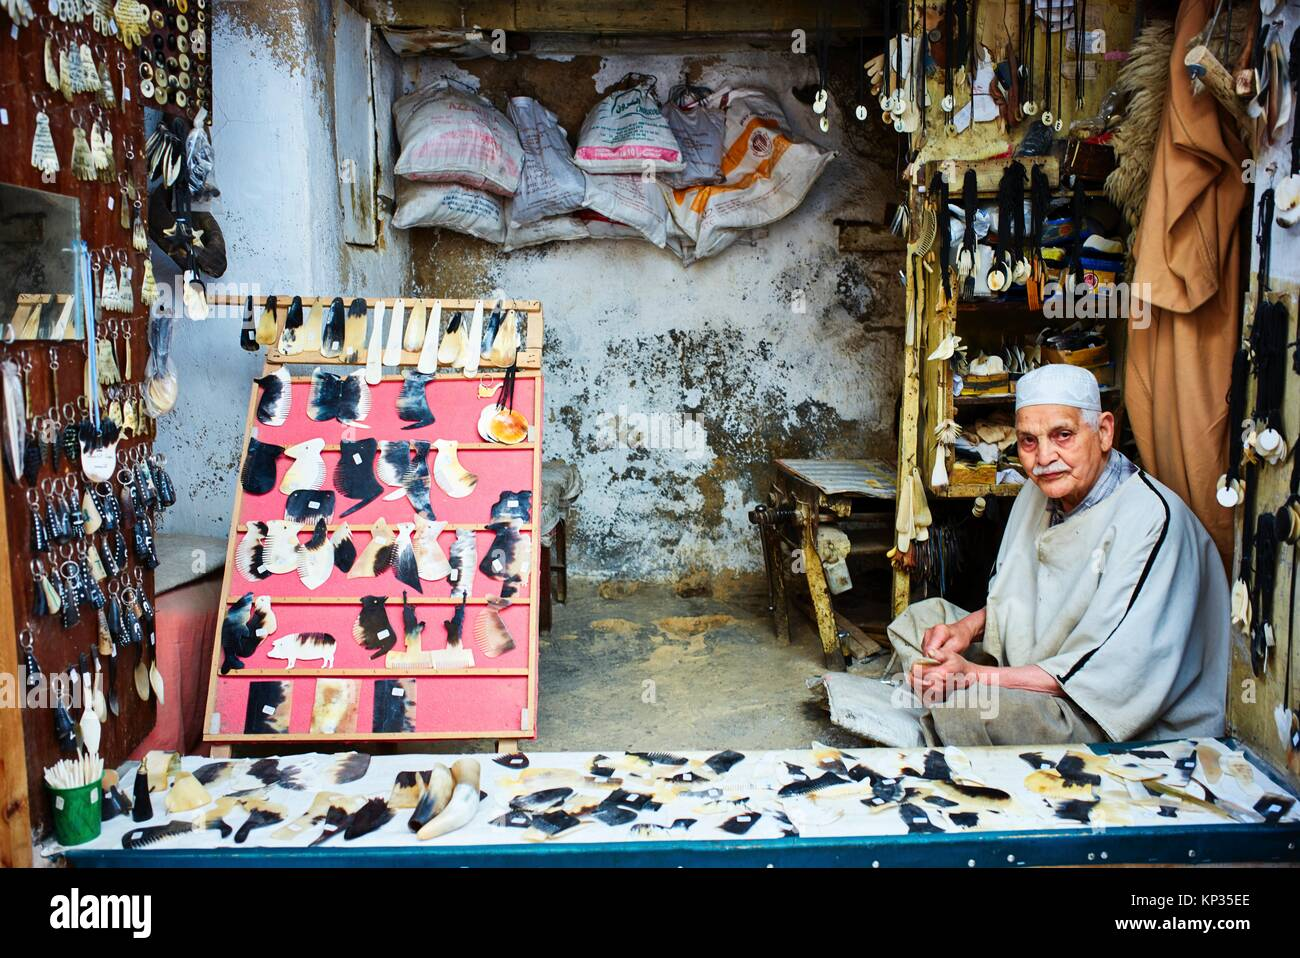 A shop in the medina of Fez, Morocco - Stock Image